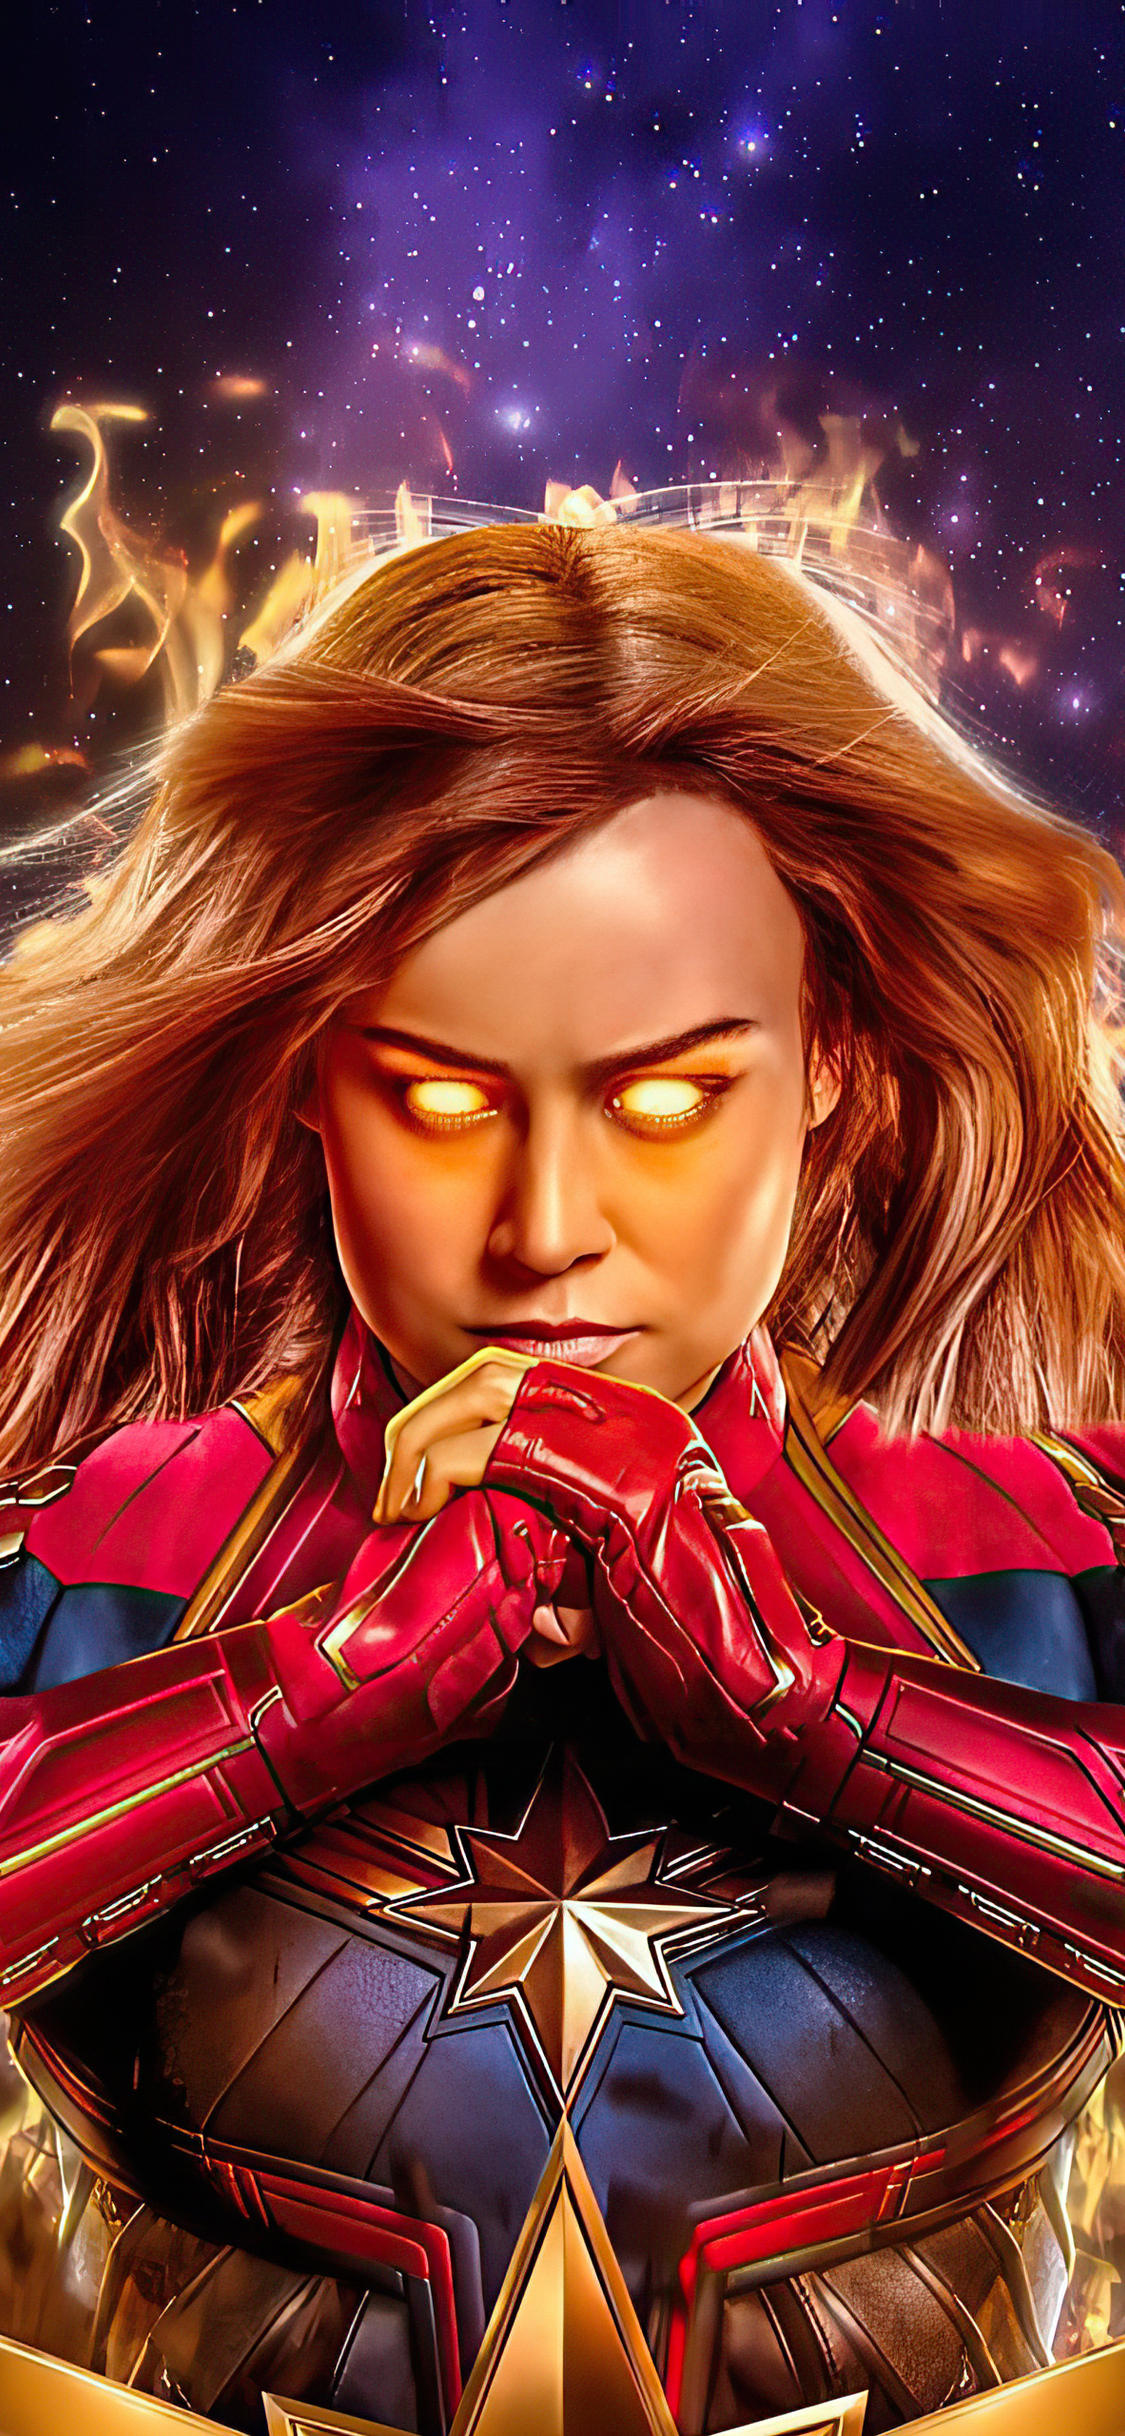 1125x2436 Captain Marvel 2020 Iphone Xs Iphone 10 Iphone X Hd 4k Wallpapers Images Backgrounds Photos And Pictures